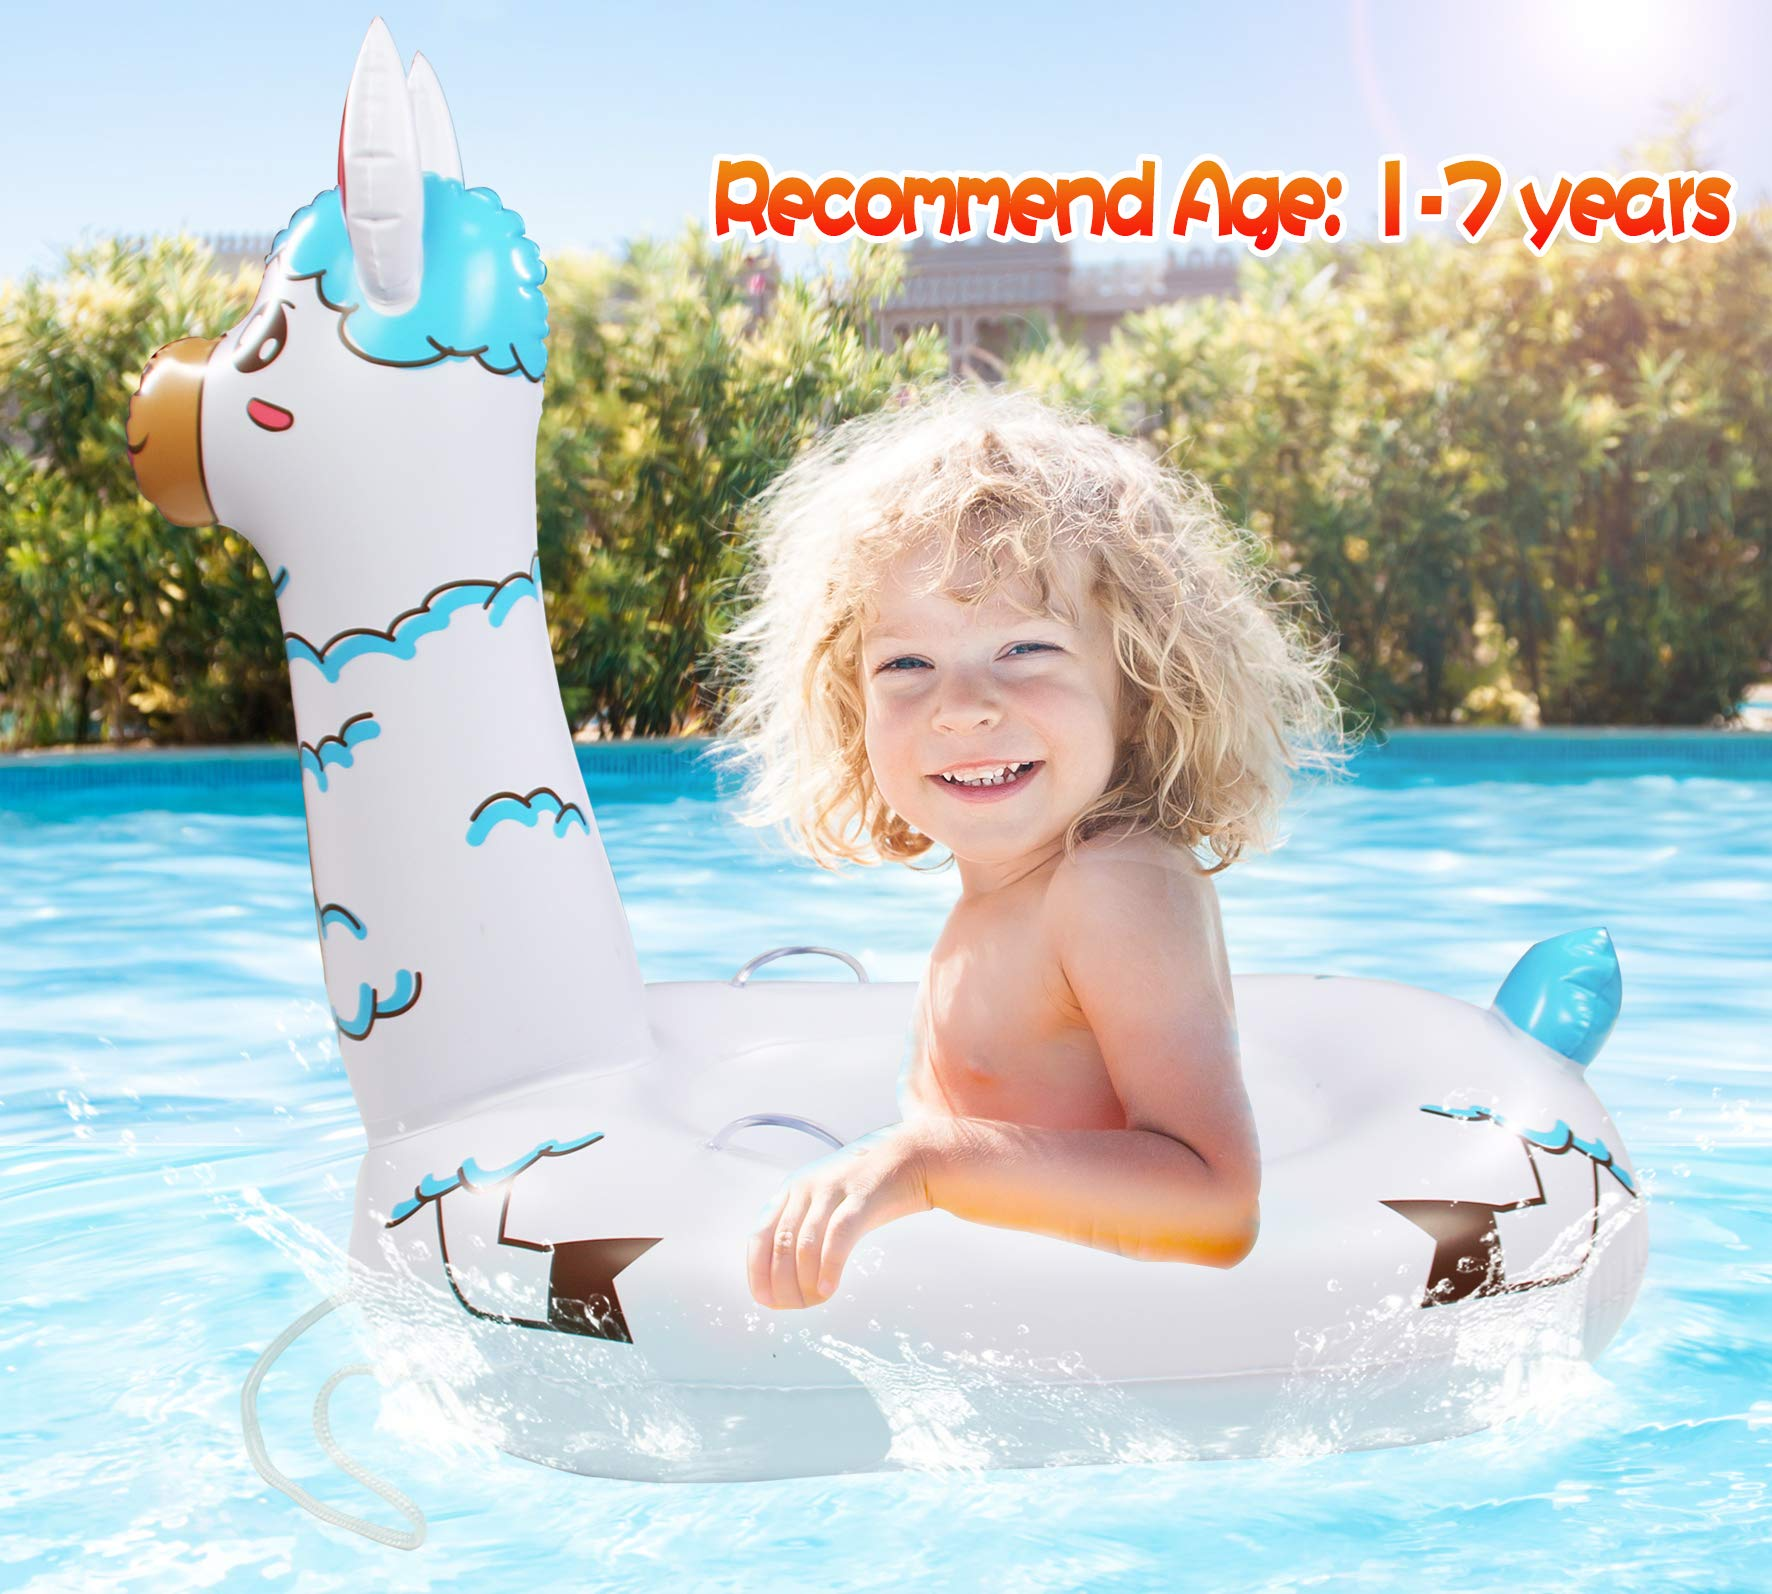 TRSCIND Baby Pool Float, Pool Floats for Kids, Toddler Pool Float with Safety Rope Swimming Float for Kids Toddlers 1-7 by TRSCIND (Image #5)